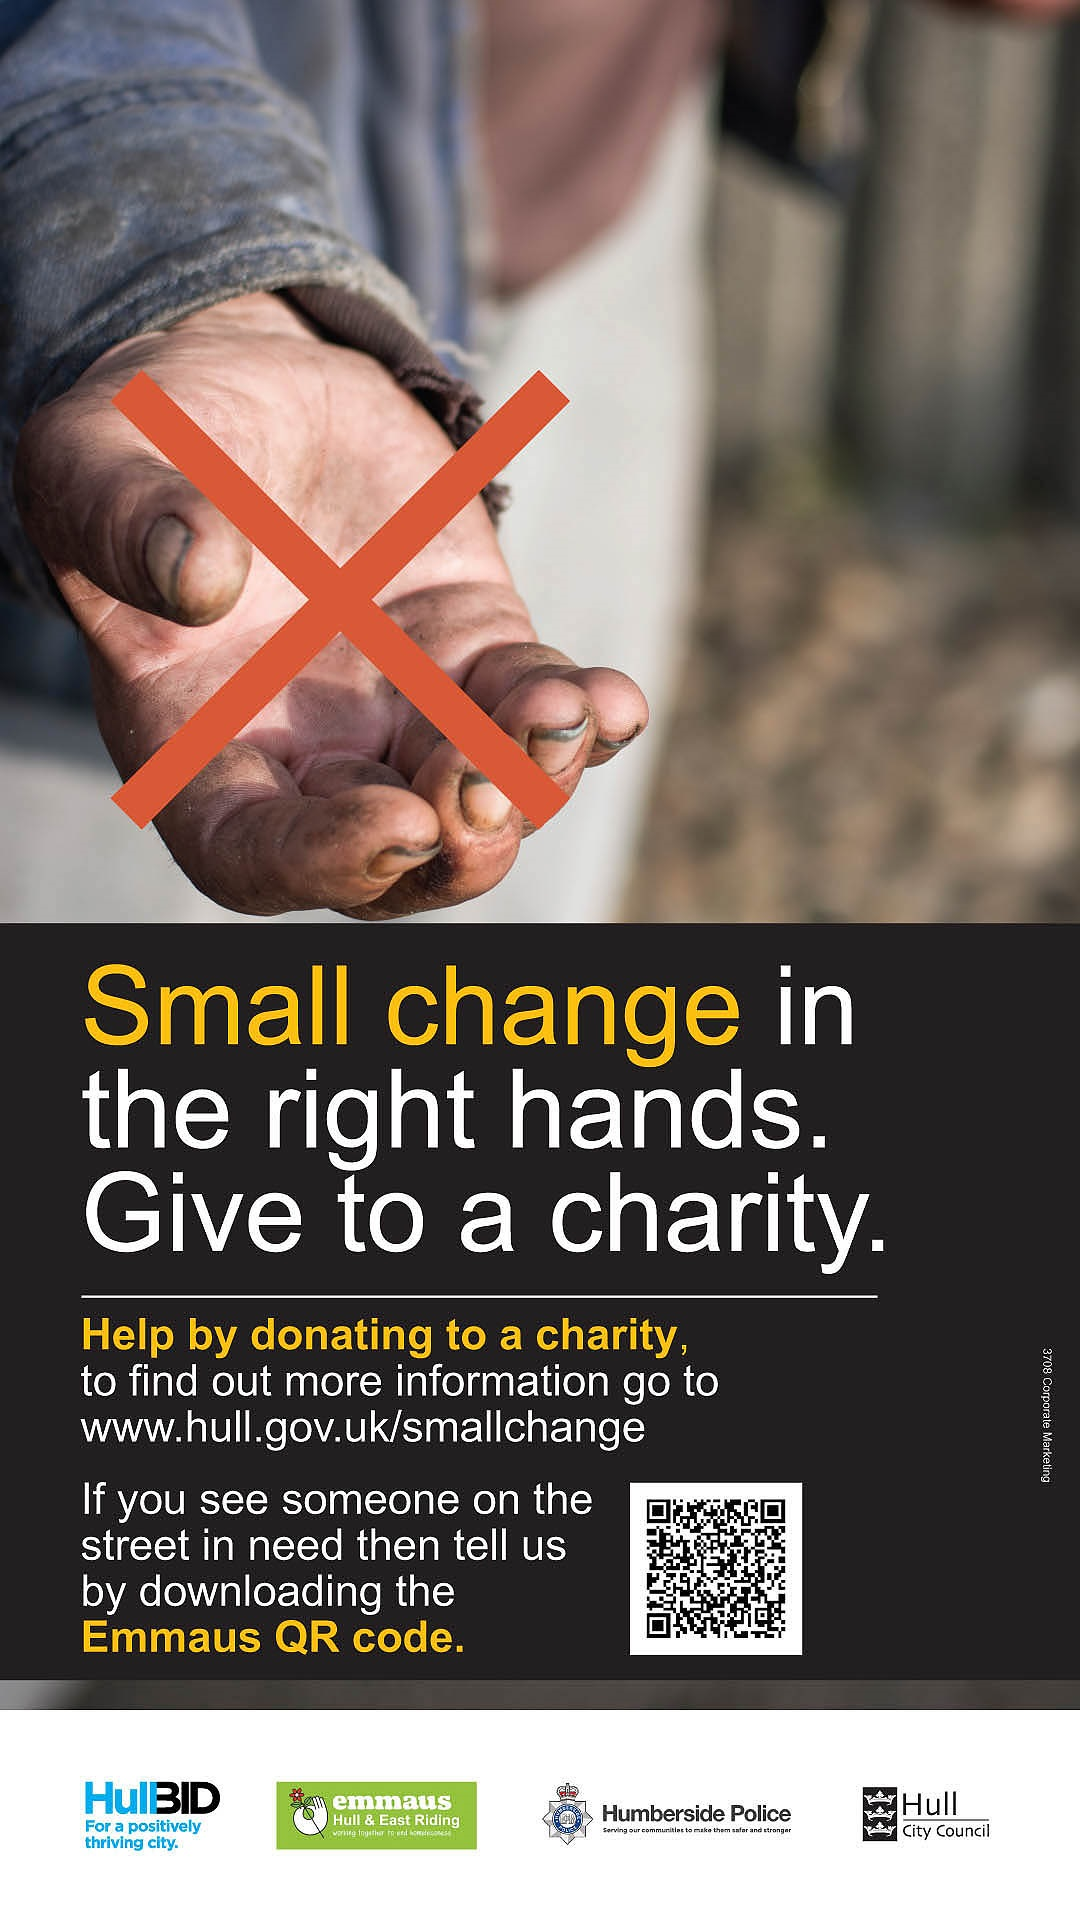 The Small Change In The Right Hands campaign, advises people to consider giving to registered charities instead of those who are begging.